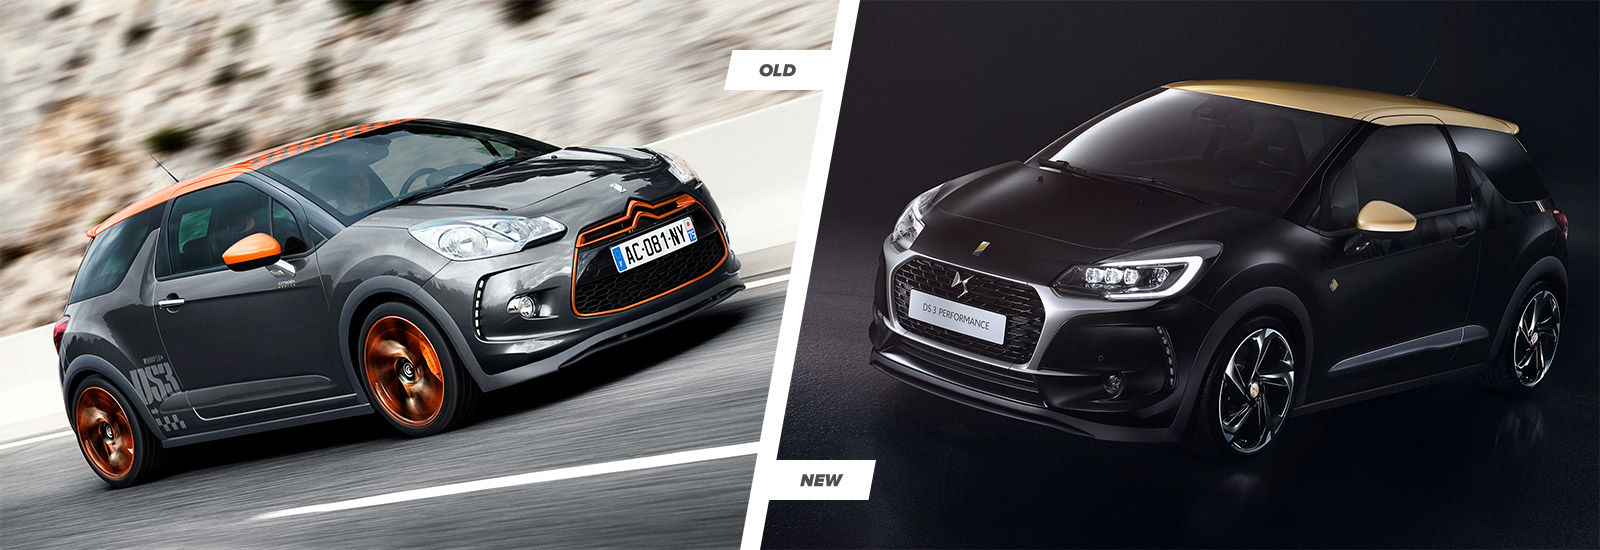 DS 3 I Restyling 2016 - now Cabriolet #5